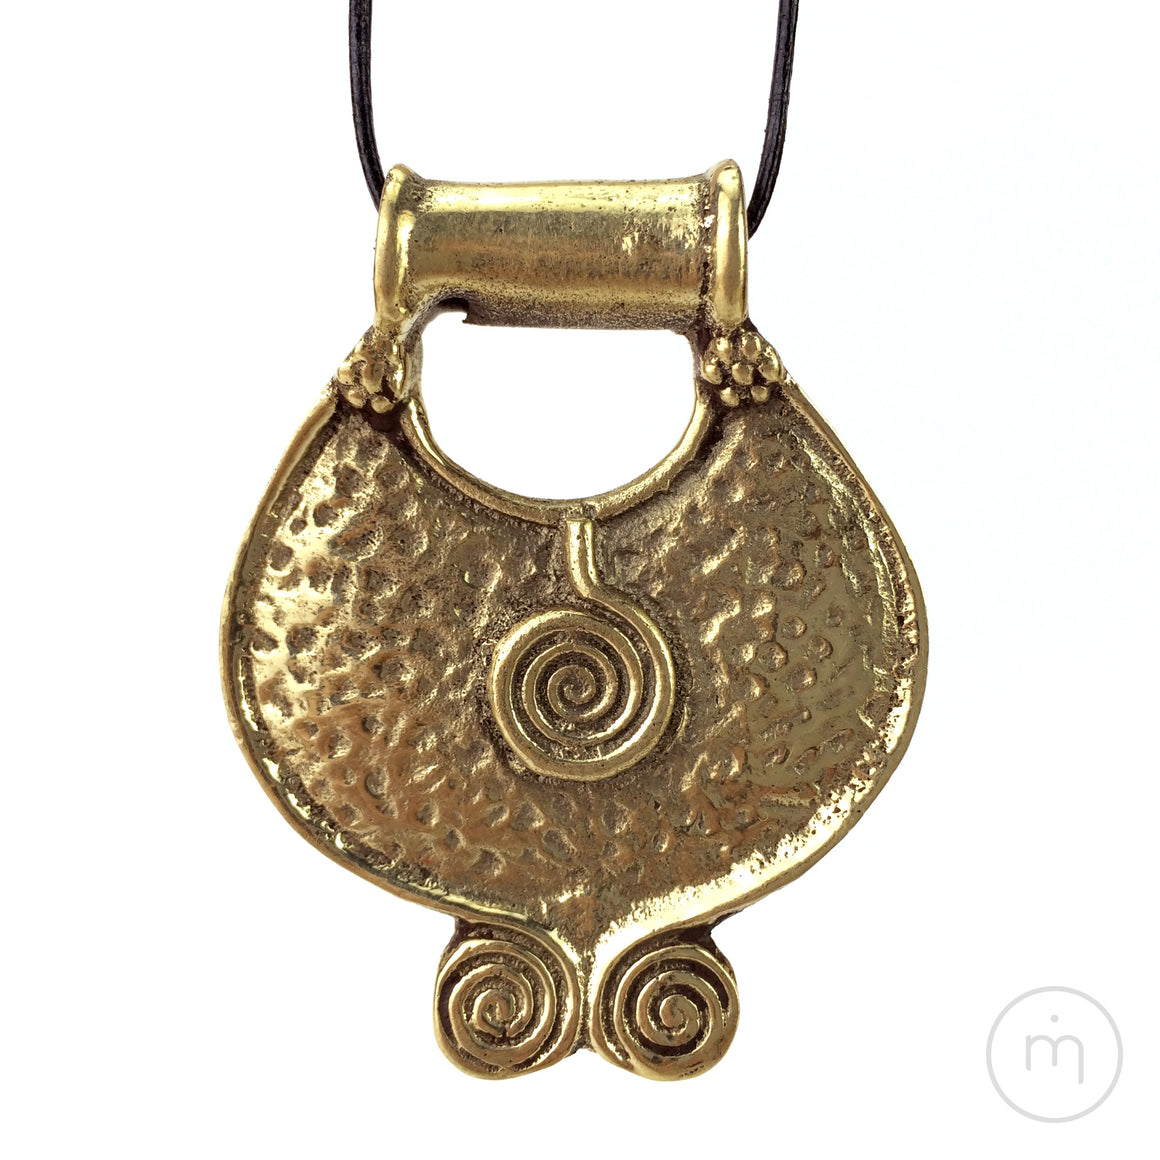 Fairtrade Nepalese 3 Spirals / Elements / Trinity Brass Pendant